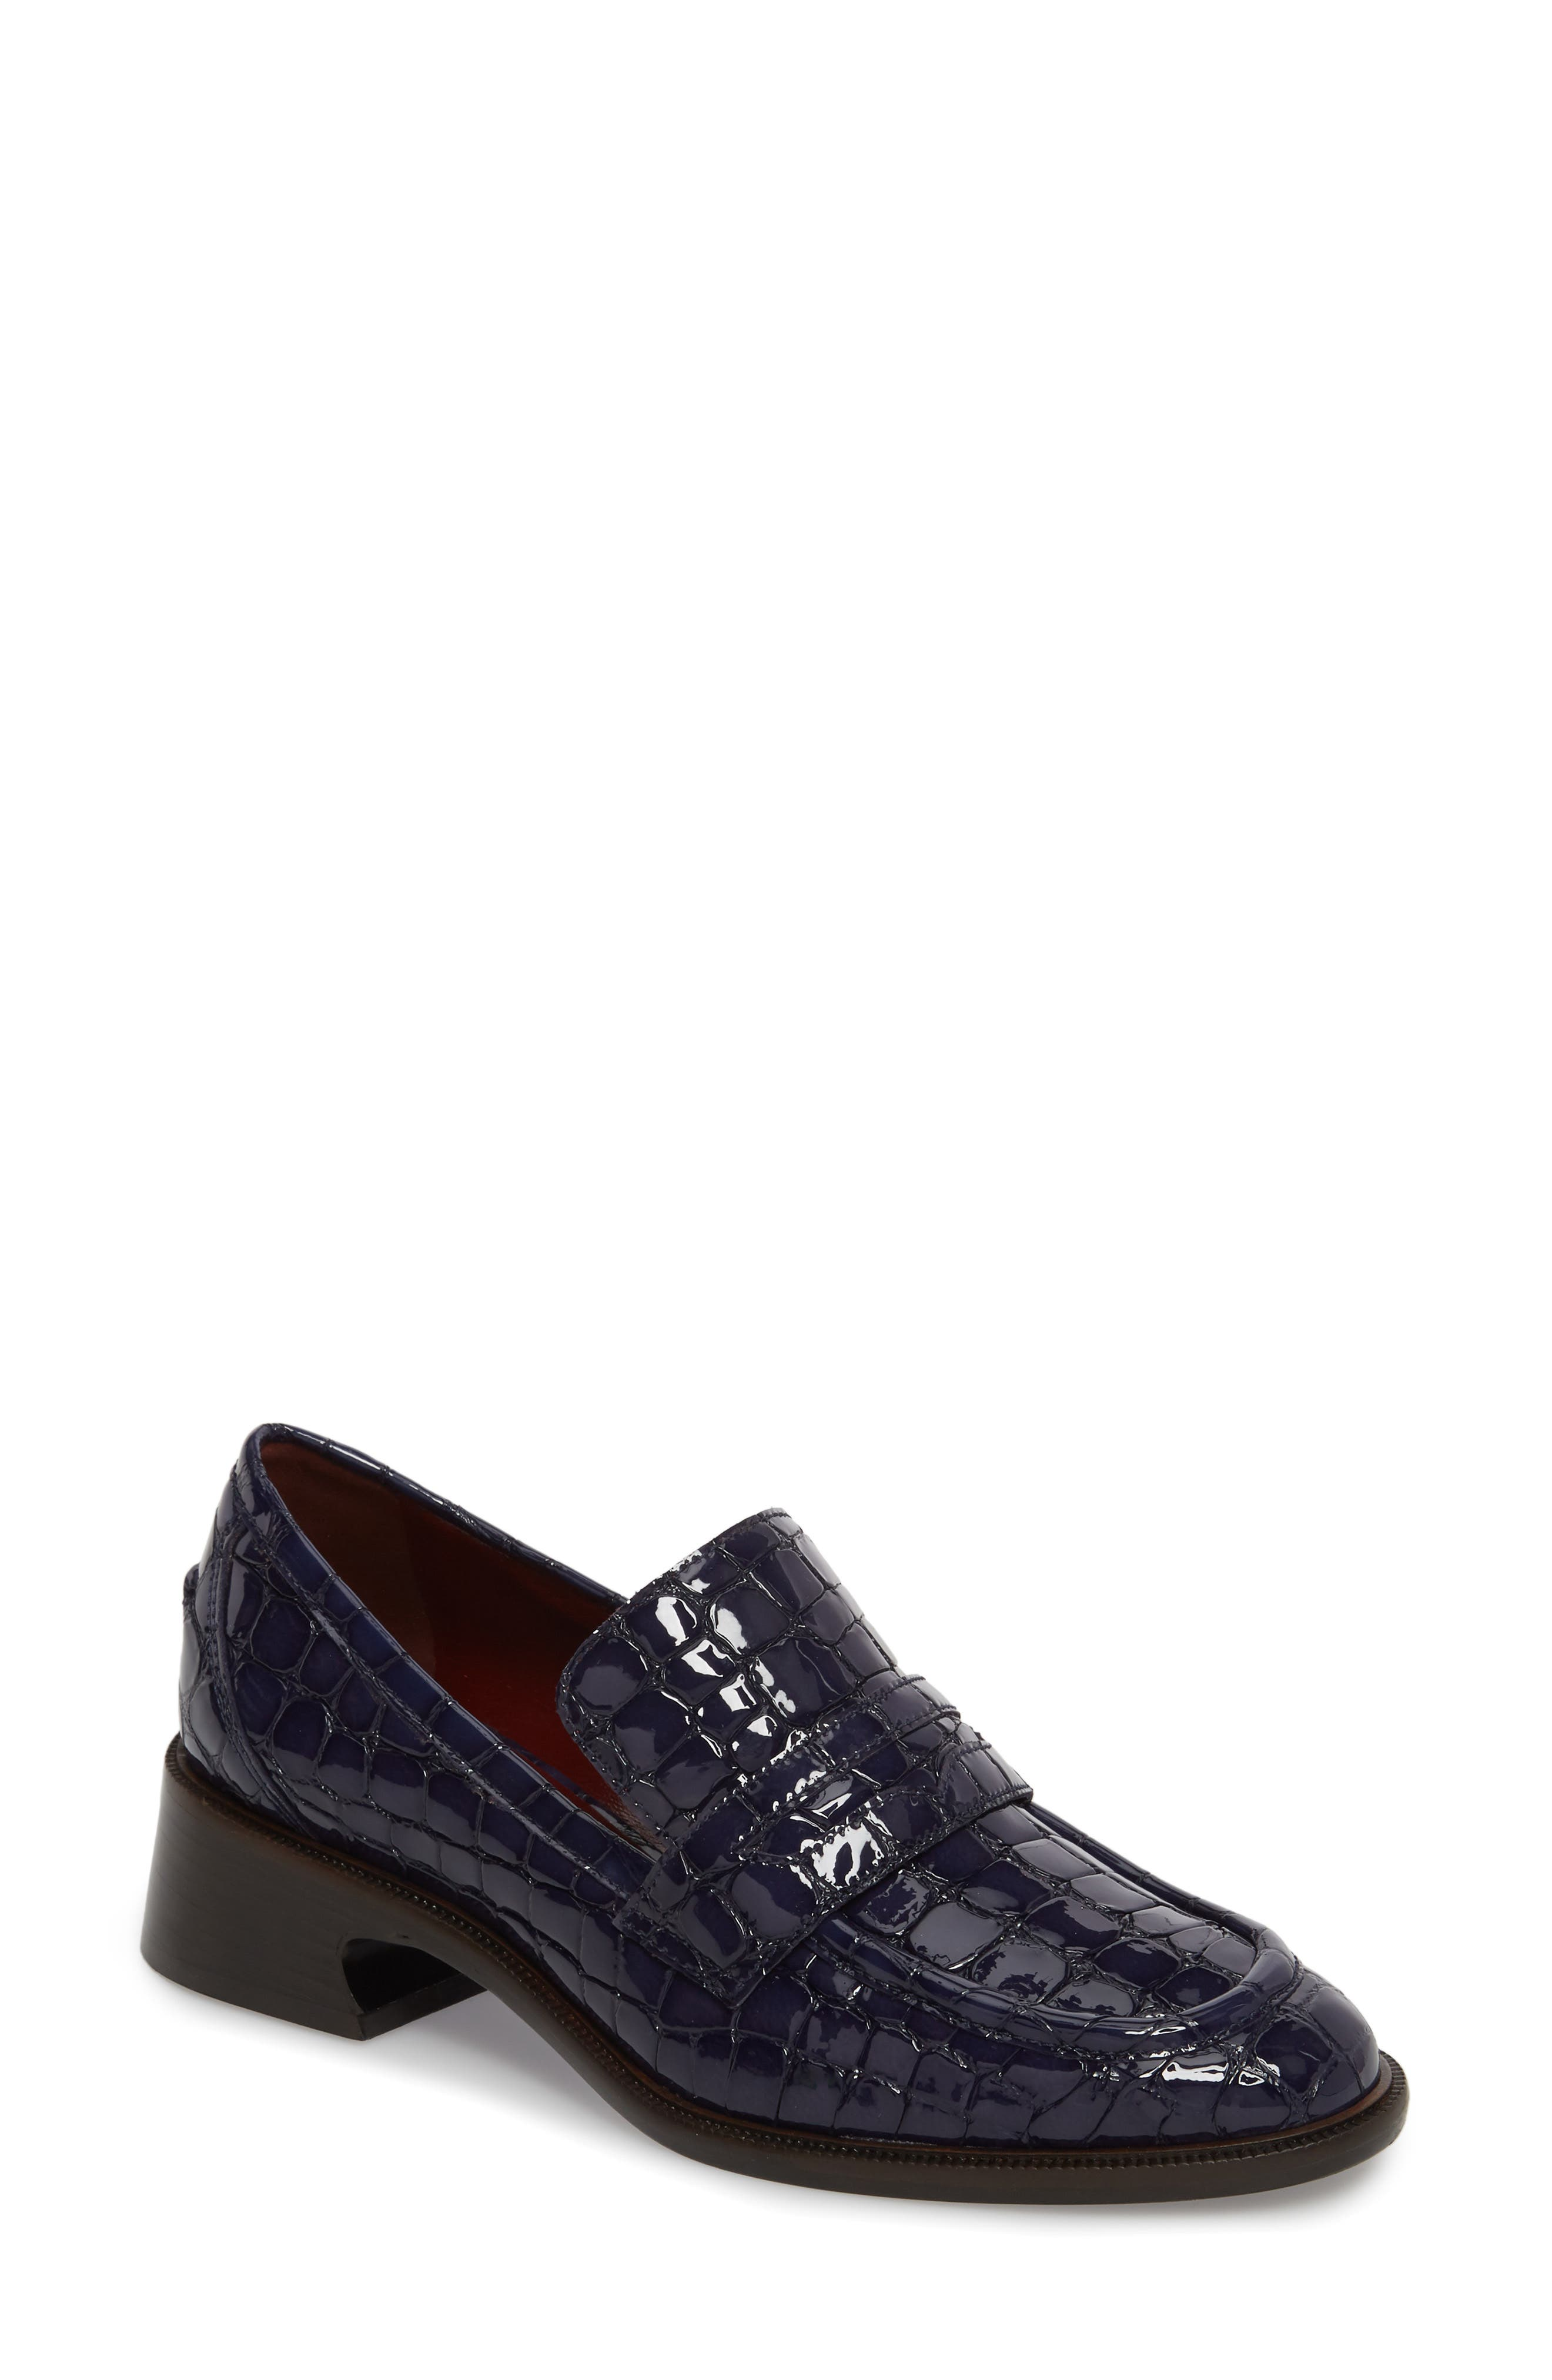 Croc Embossed Loafer,                             Main thumbnail 1, color,                             NAVY